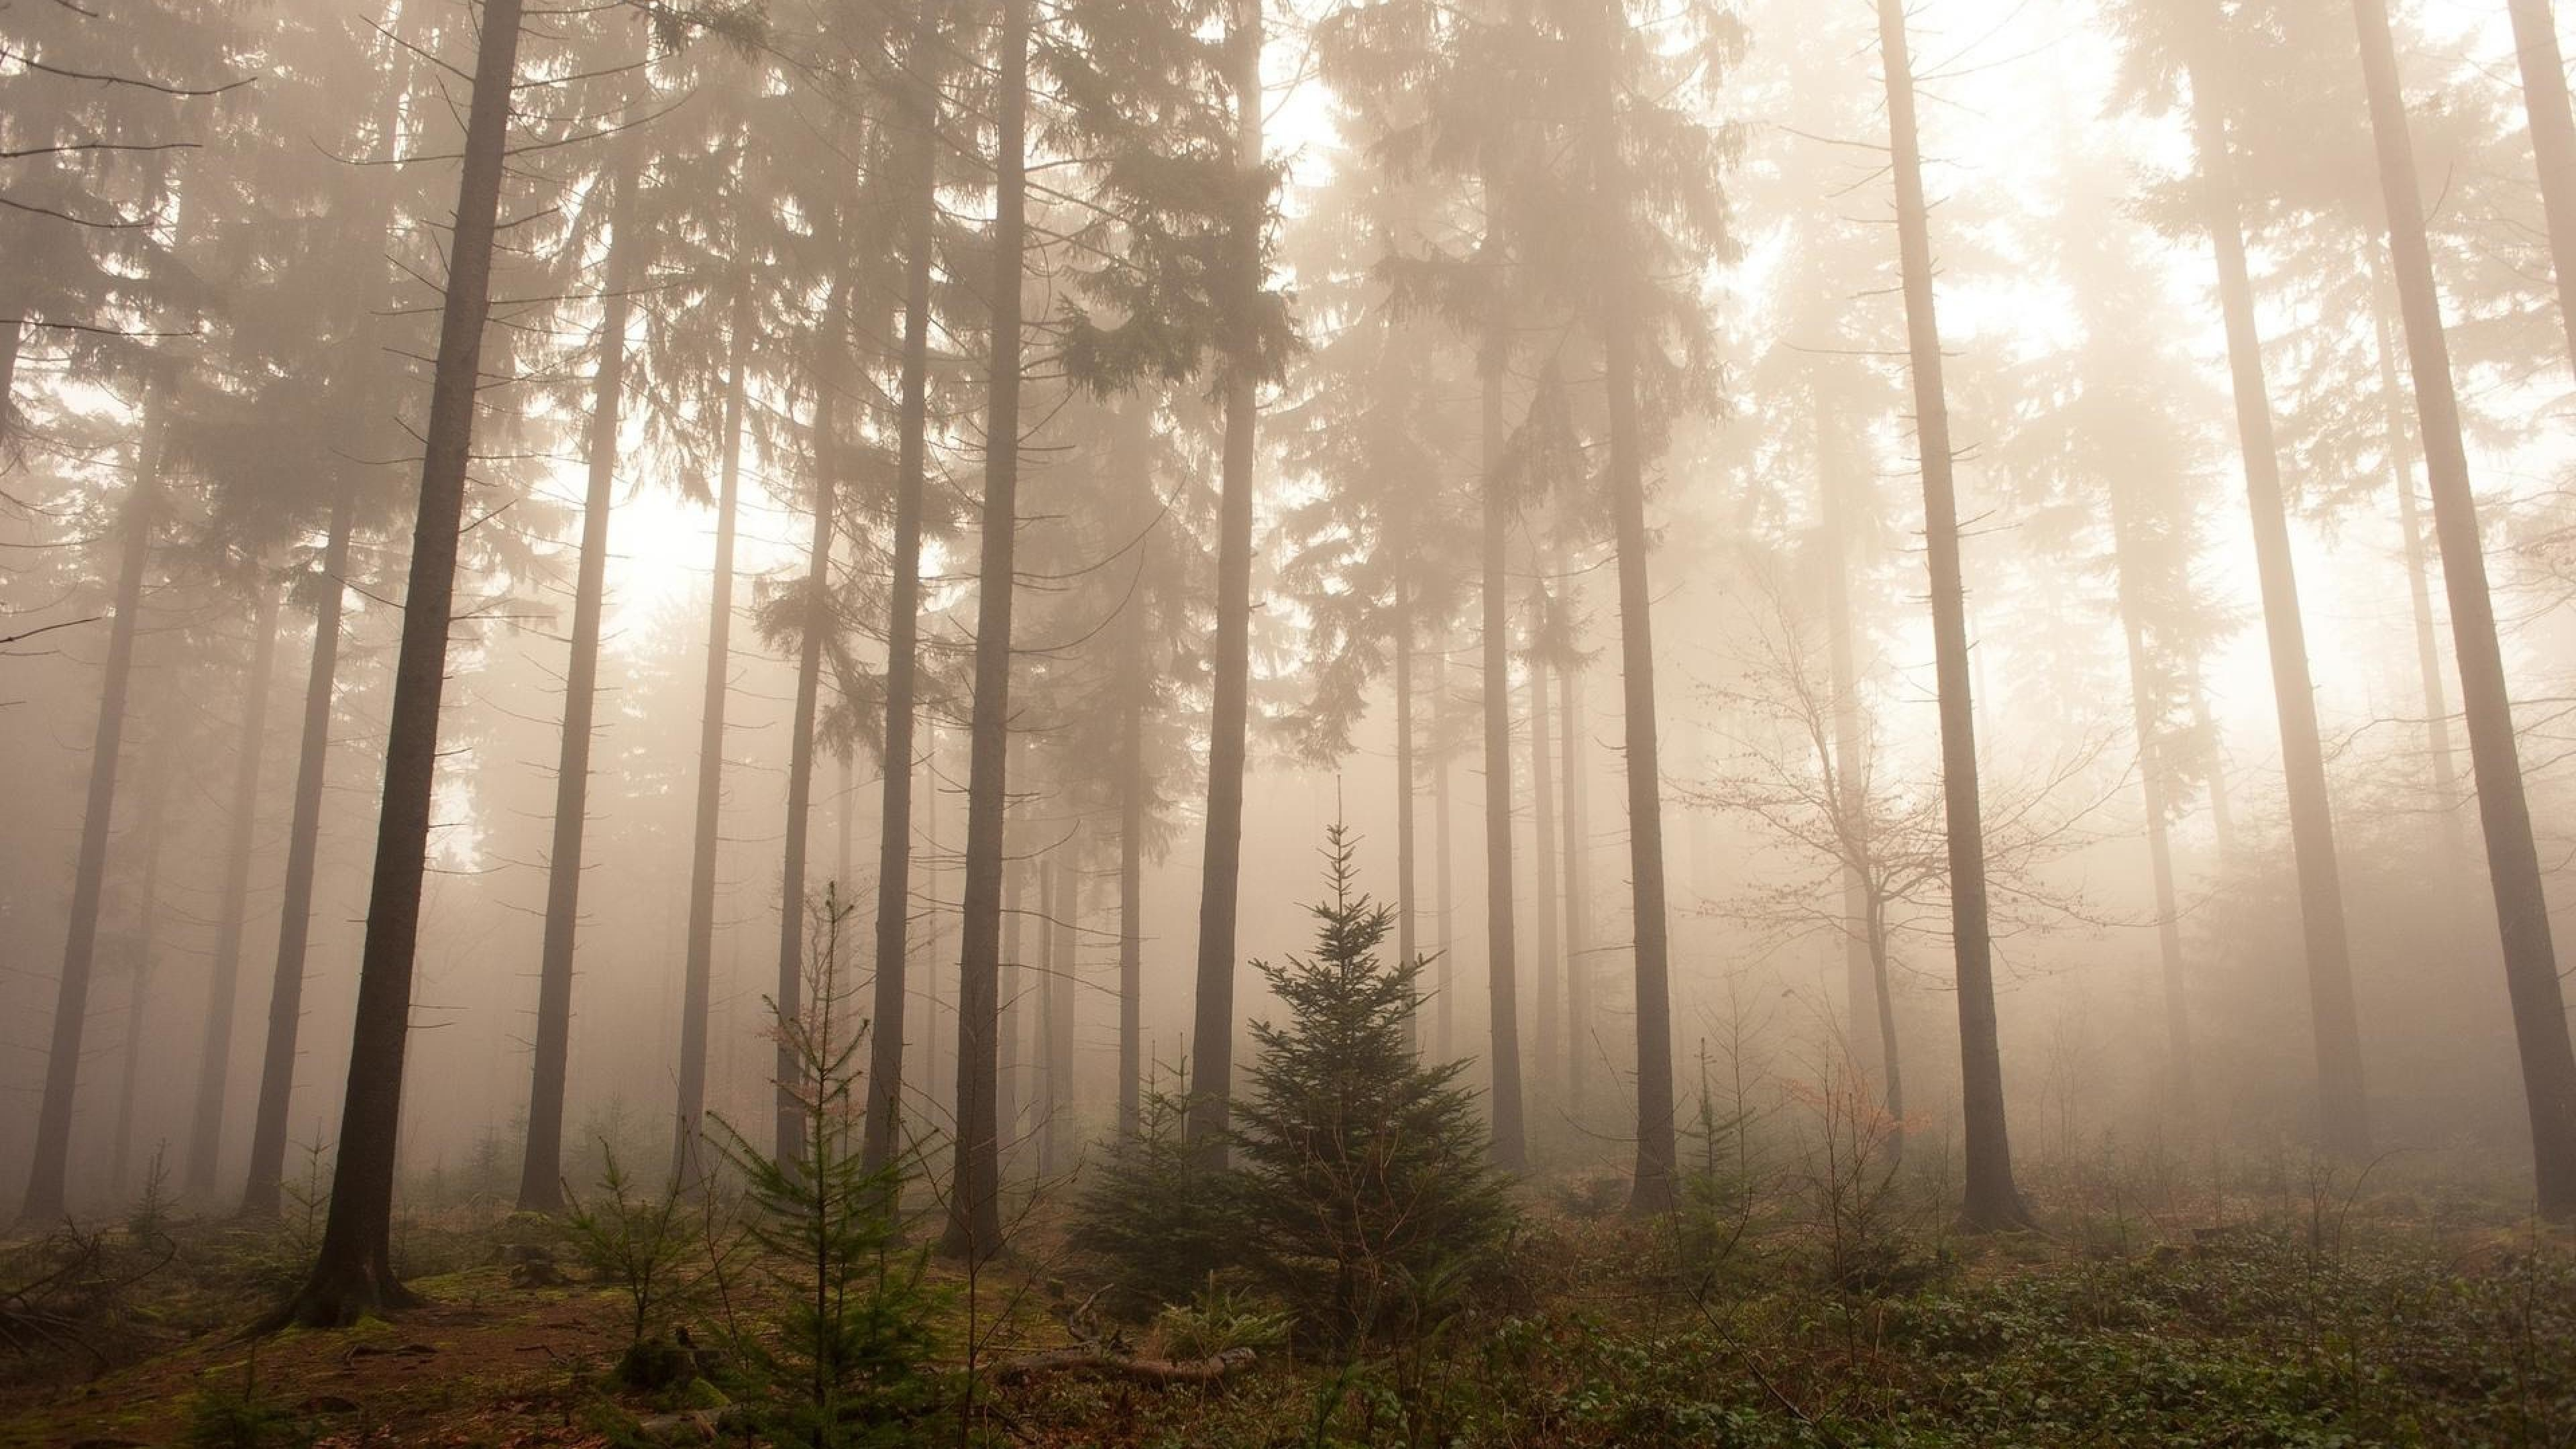 wallpaper.wiki-Nature-Foggy-Forest-Wallpapers-PIC-WPB004351